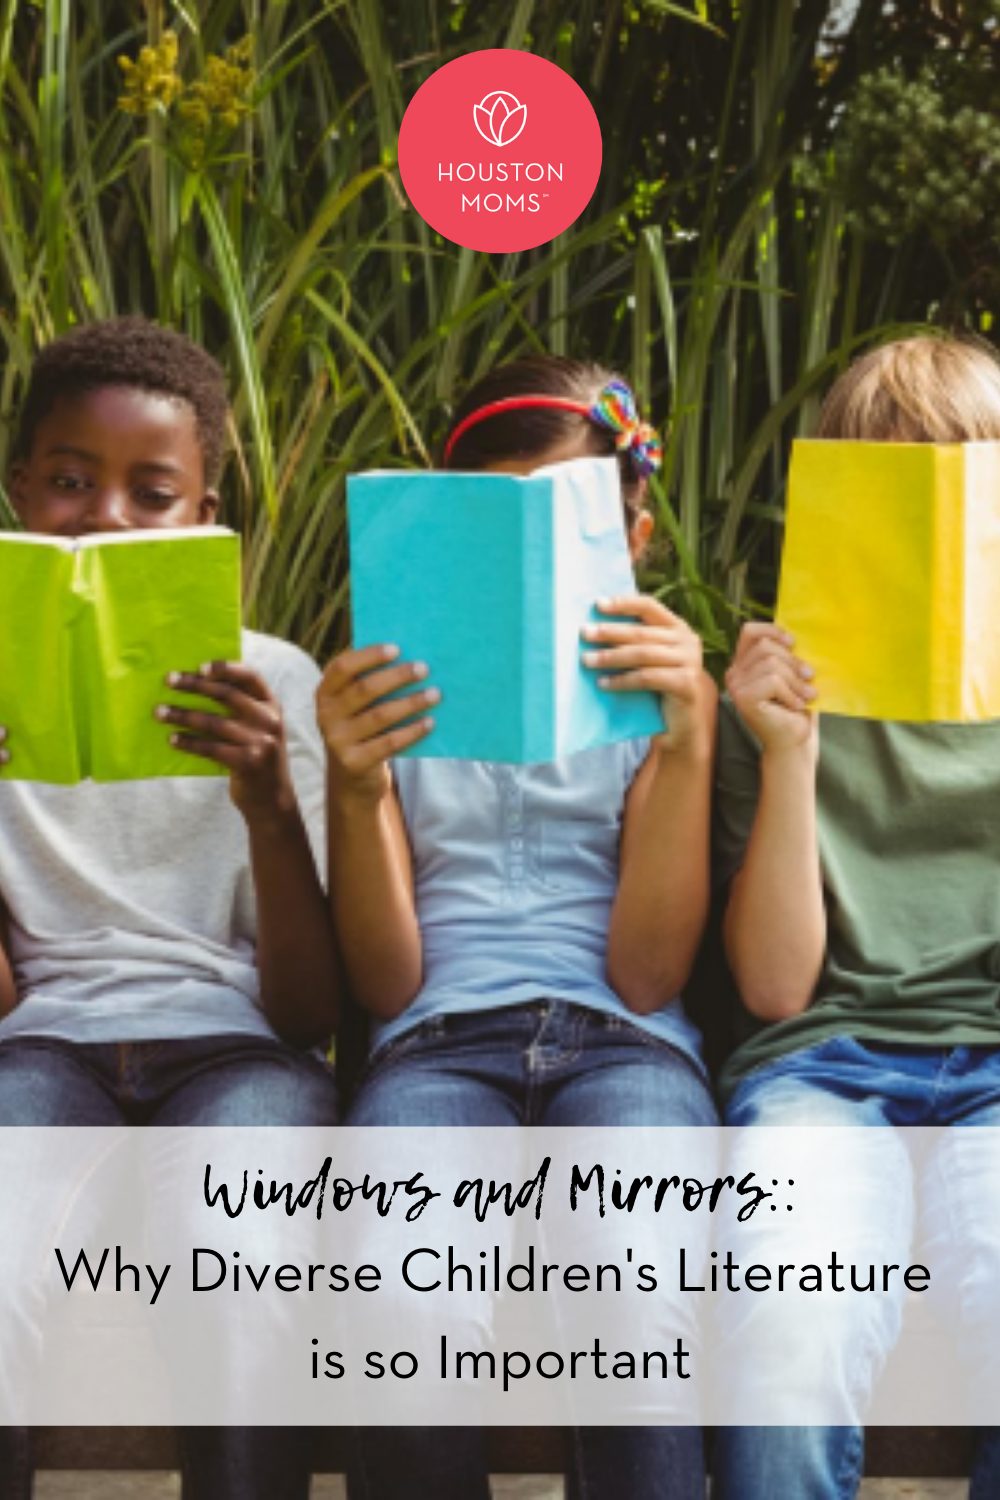 "Houston Moms ""Windows and Mirrors:: Why Diverse Children's Literature is so Important"" #houstonmoms #houstonmomsblog #momsaroundhouston"